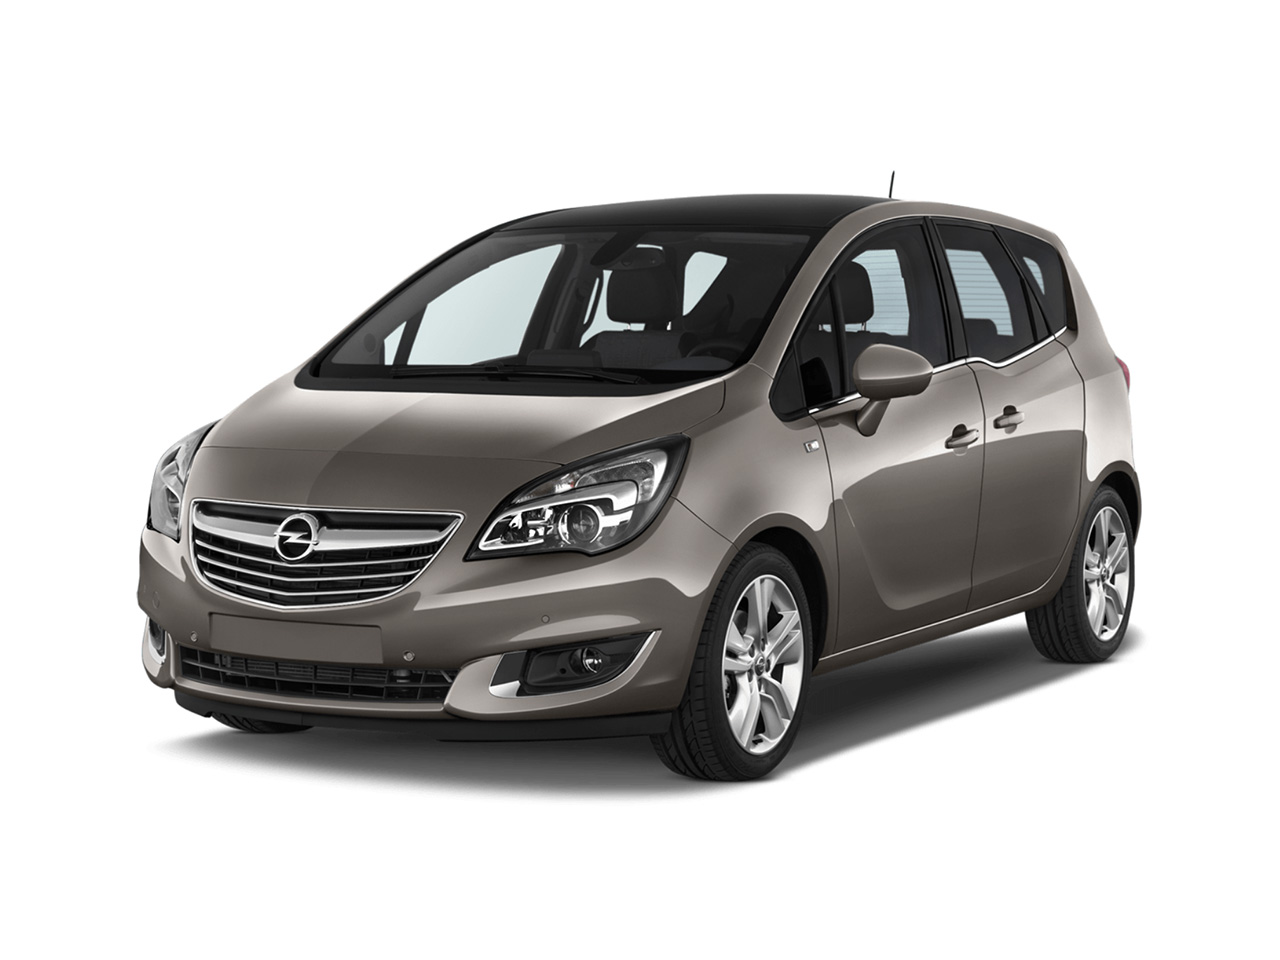 2017 opel meriva prices in uae gulf specs reviews for dubai abu dhabi and sharjah yallamotor. Black Bedroom Furniture Sets. Home Design Ideas